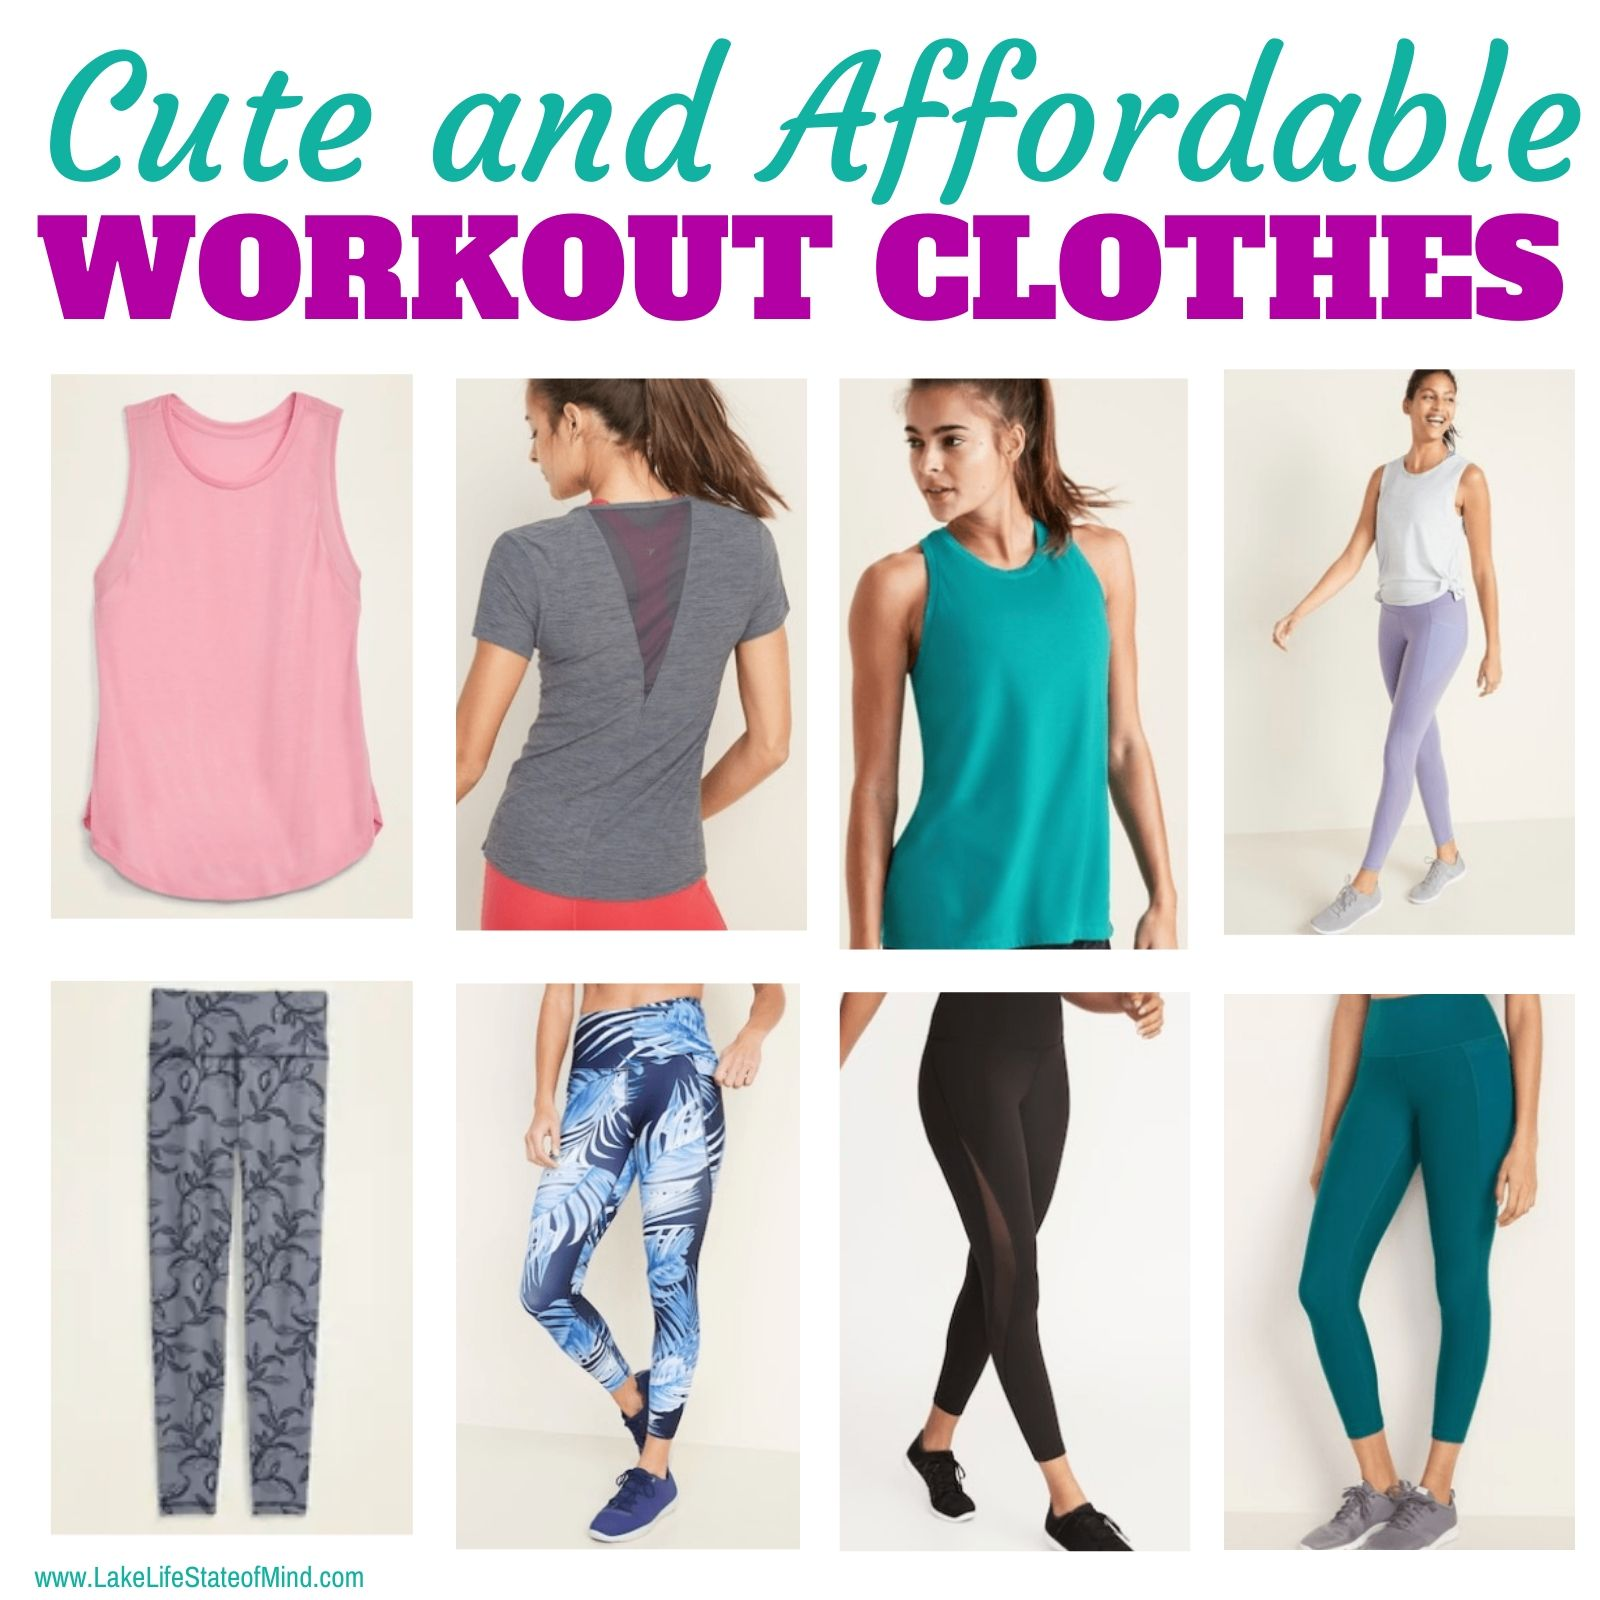 Cute and Affordable Workout Clothes